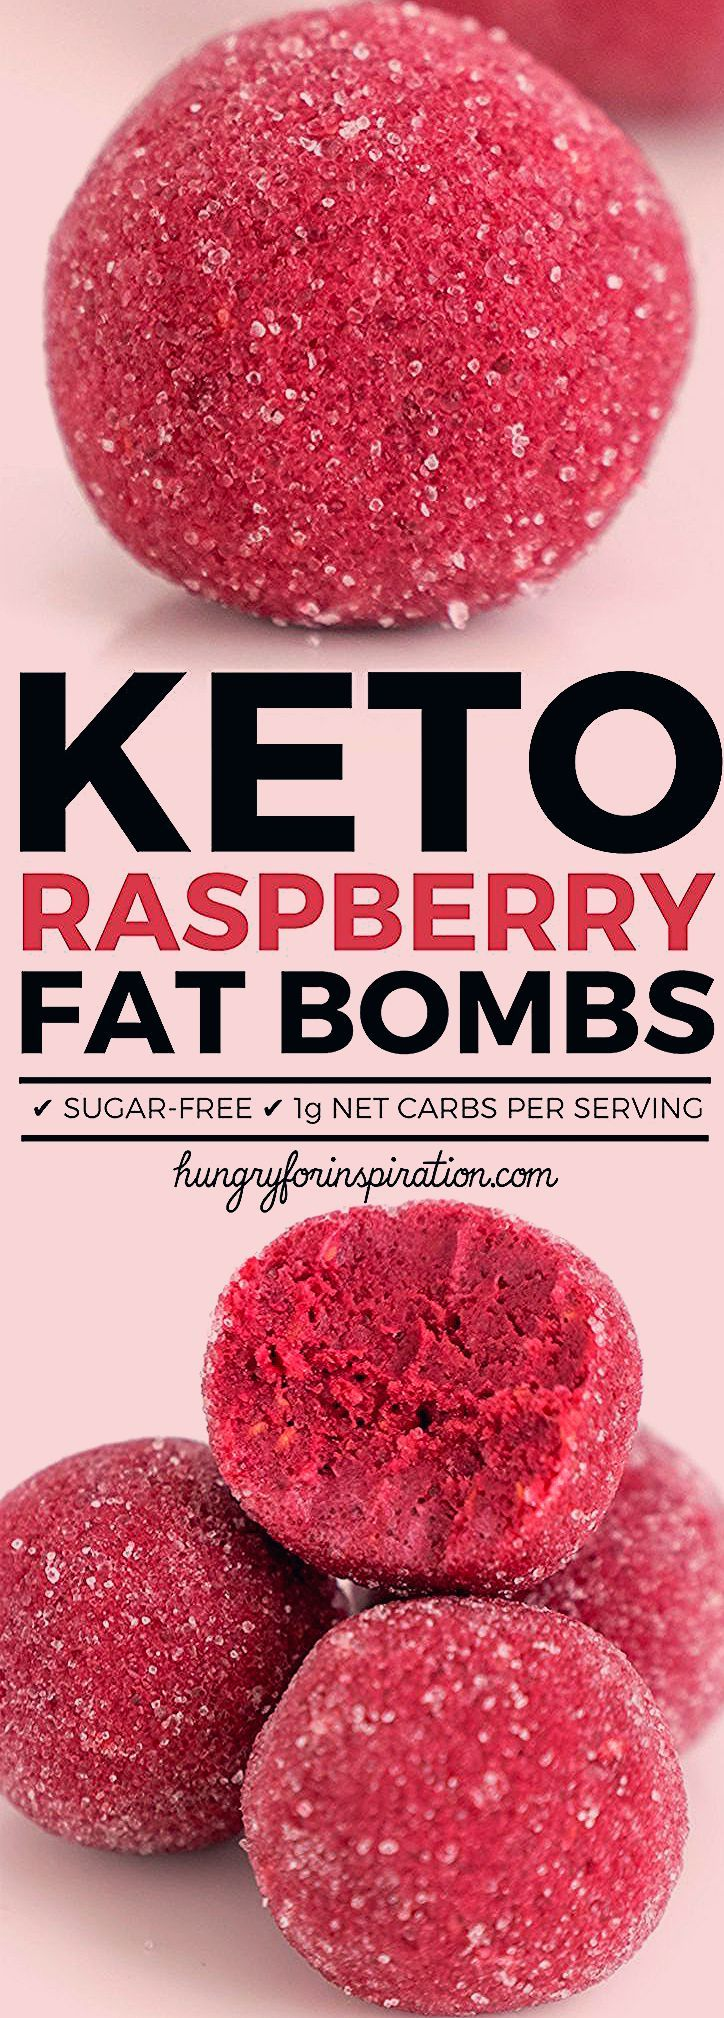 Photo of Healthy Keto Raspberry Fat Bombs | Hungry For Inspiration